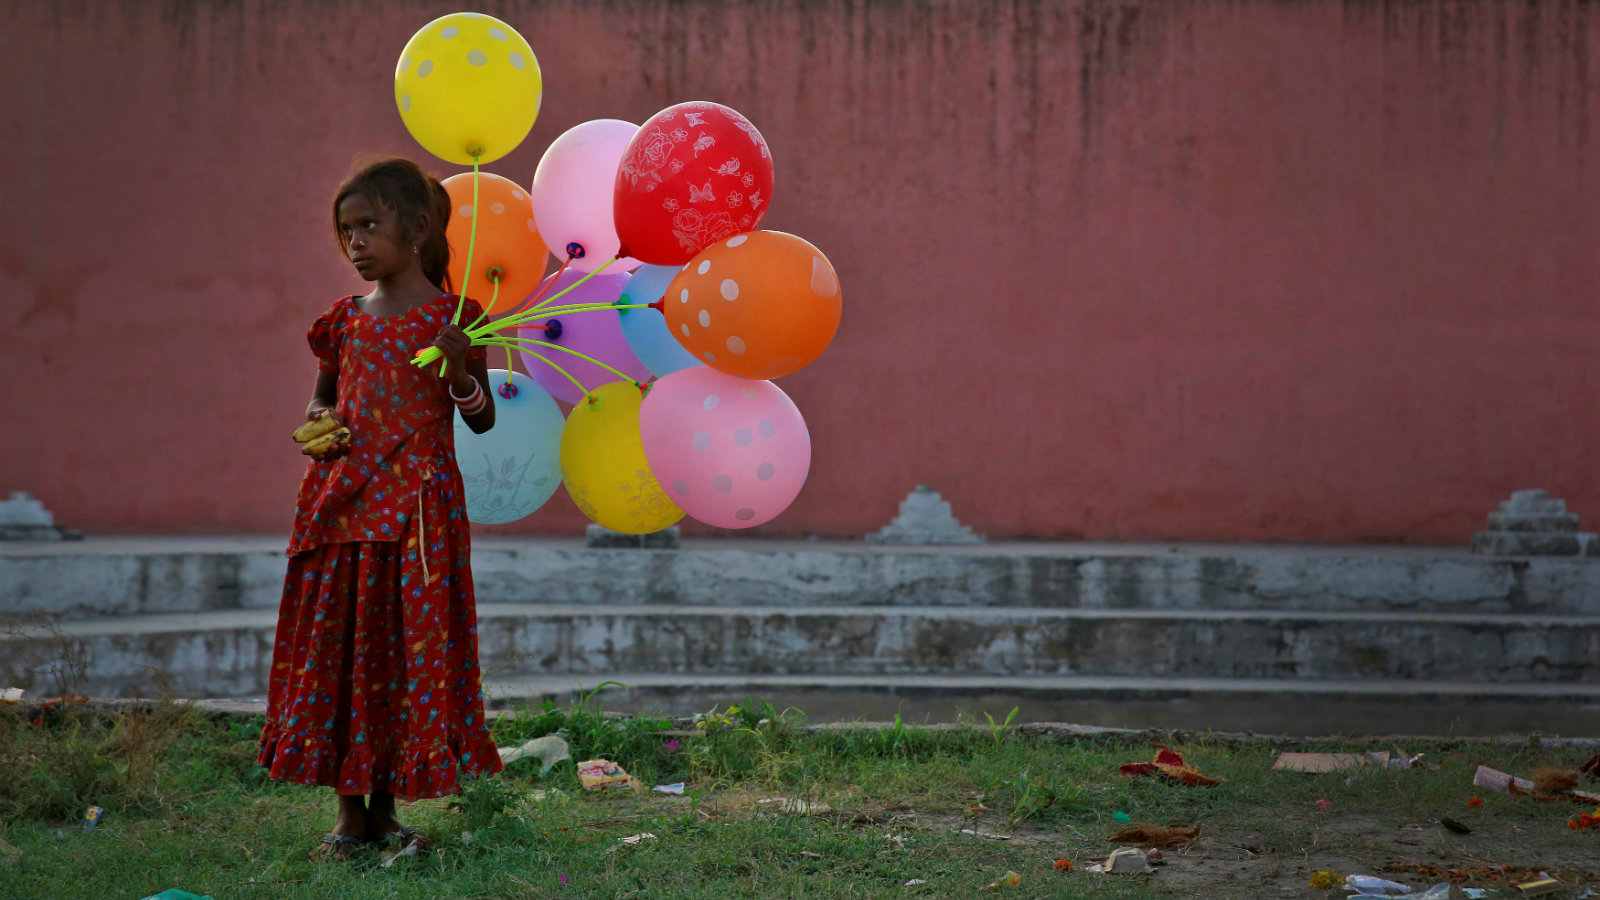 A young girl sells balloons by the Yamuna River on the last day of the ten-day-long Ganesh Chaturthi festival in Delhi, India, September 15, 2016.